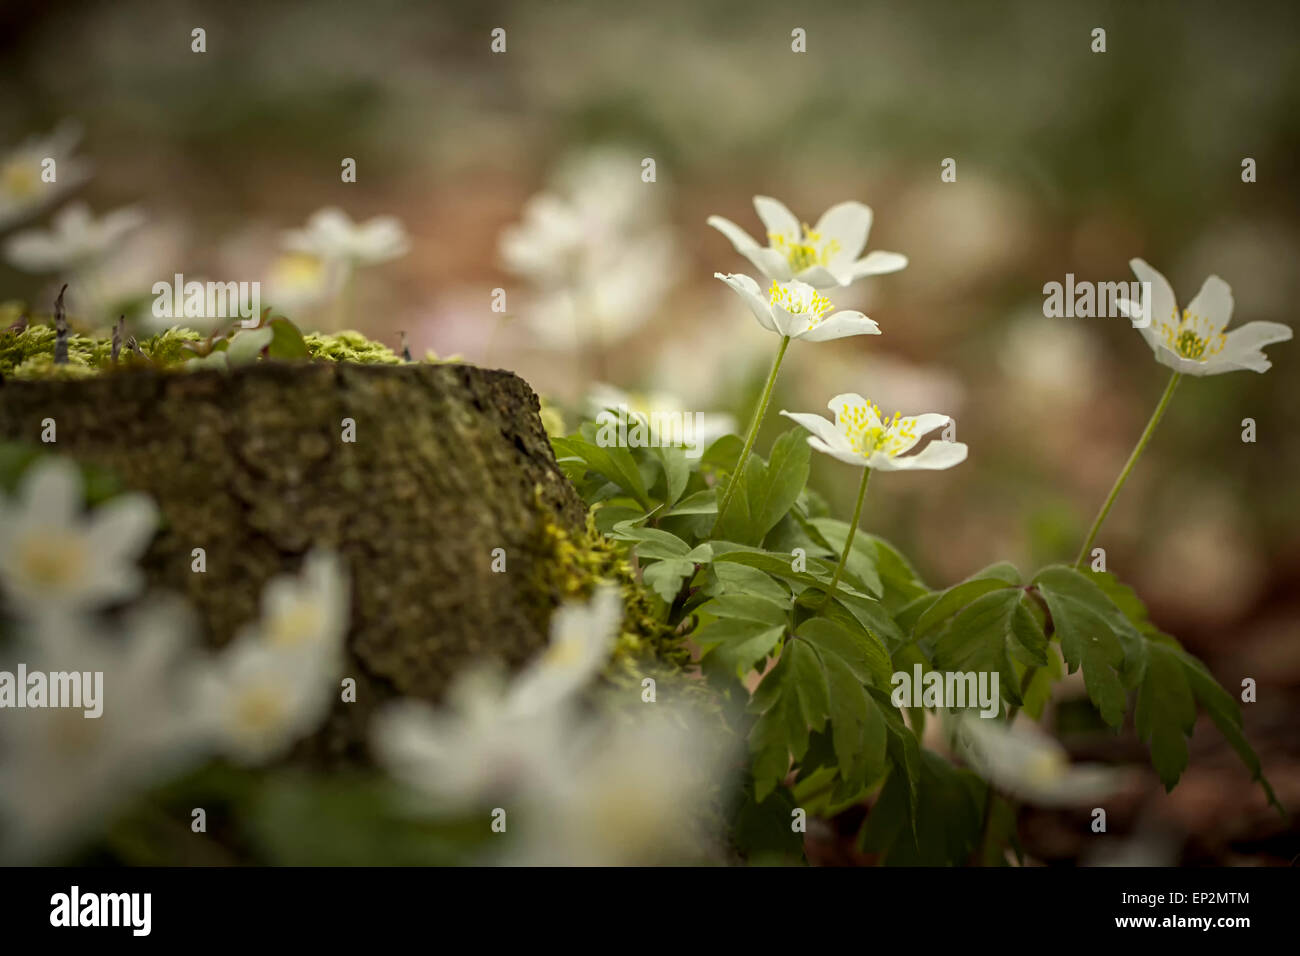 Germany, wood anemones growing in a forest - Stock Image